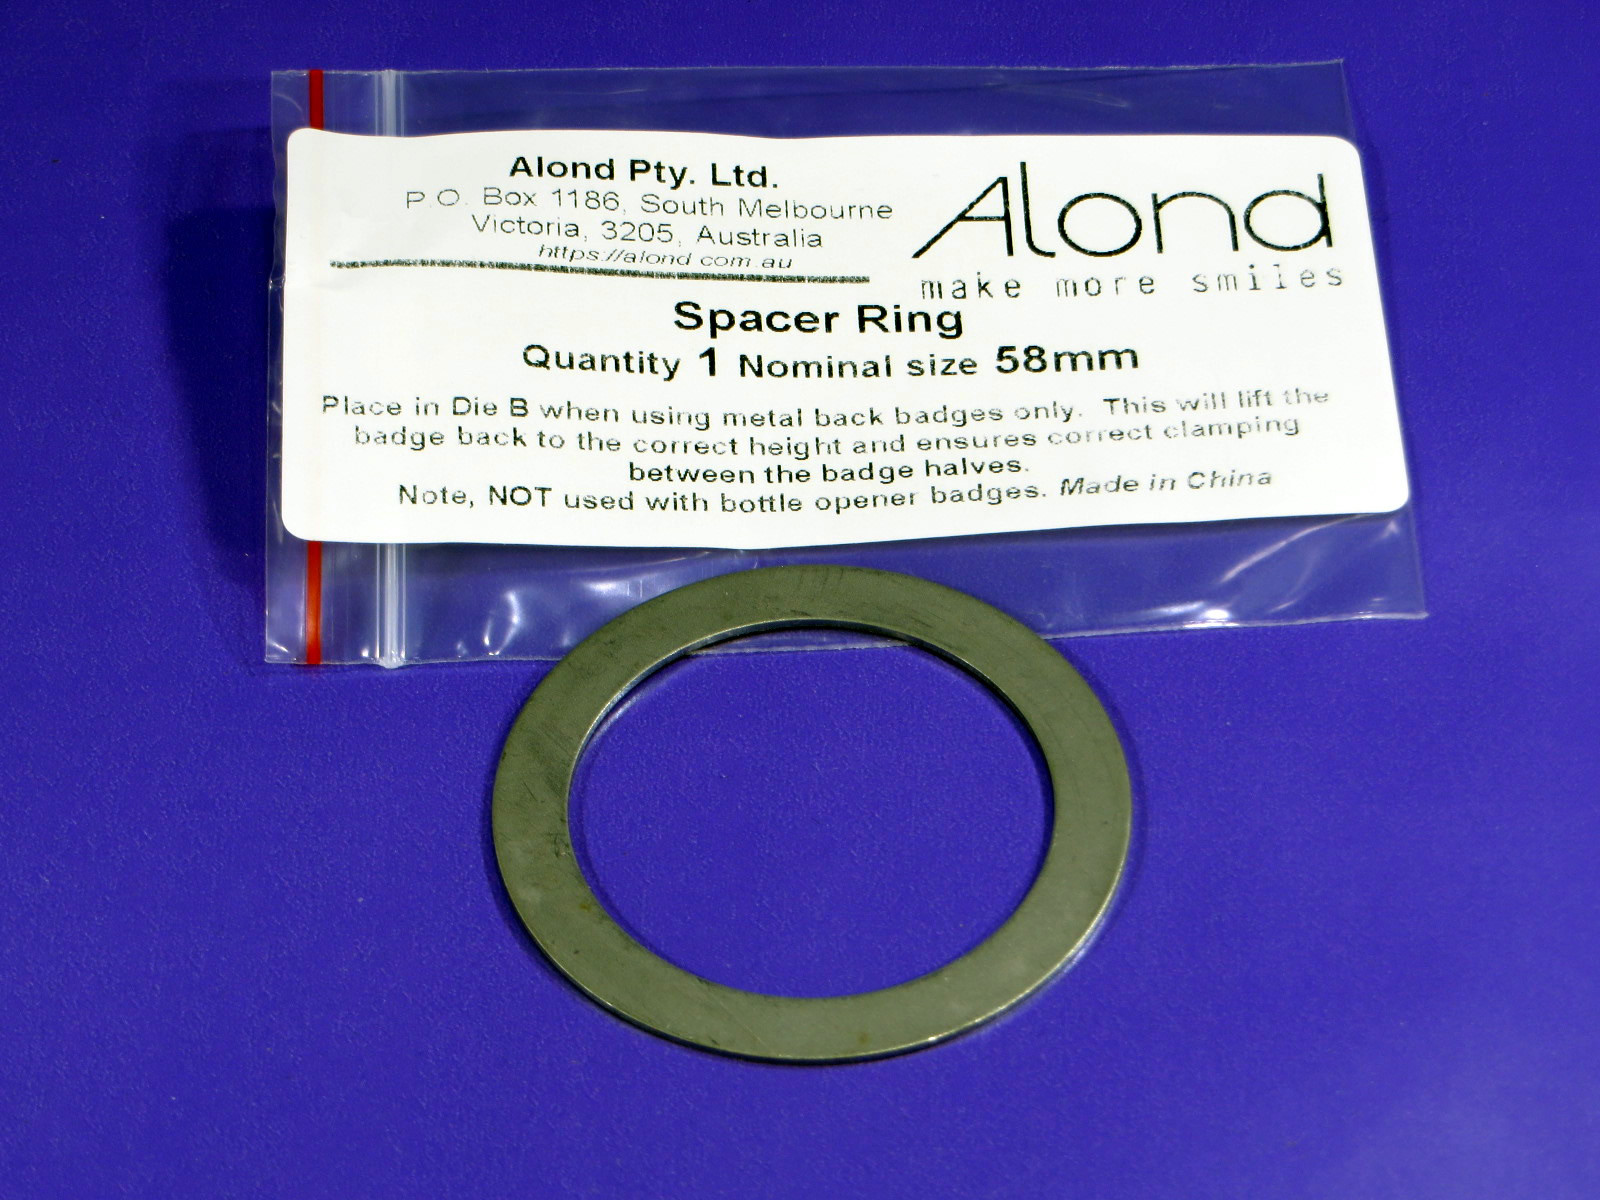 Specer ring to allow the use of metal back badges in badge-makers